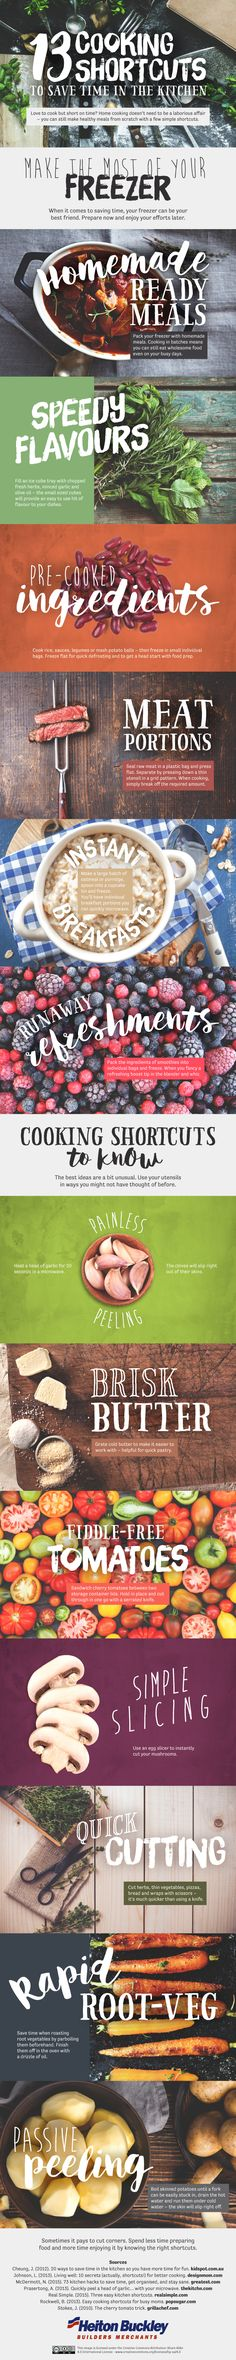 13 Cooking Shortcuts to Save Time in the Kitchen http://www.ebay.com/itm/Omus-white-powder-gold-MONATOMIC-GOLD-30-Count-/221917739670?